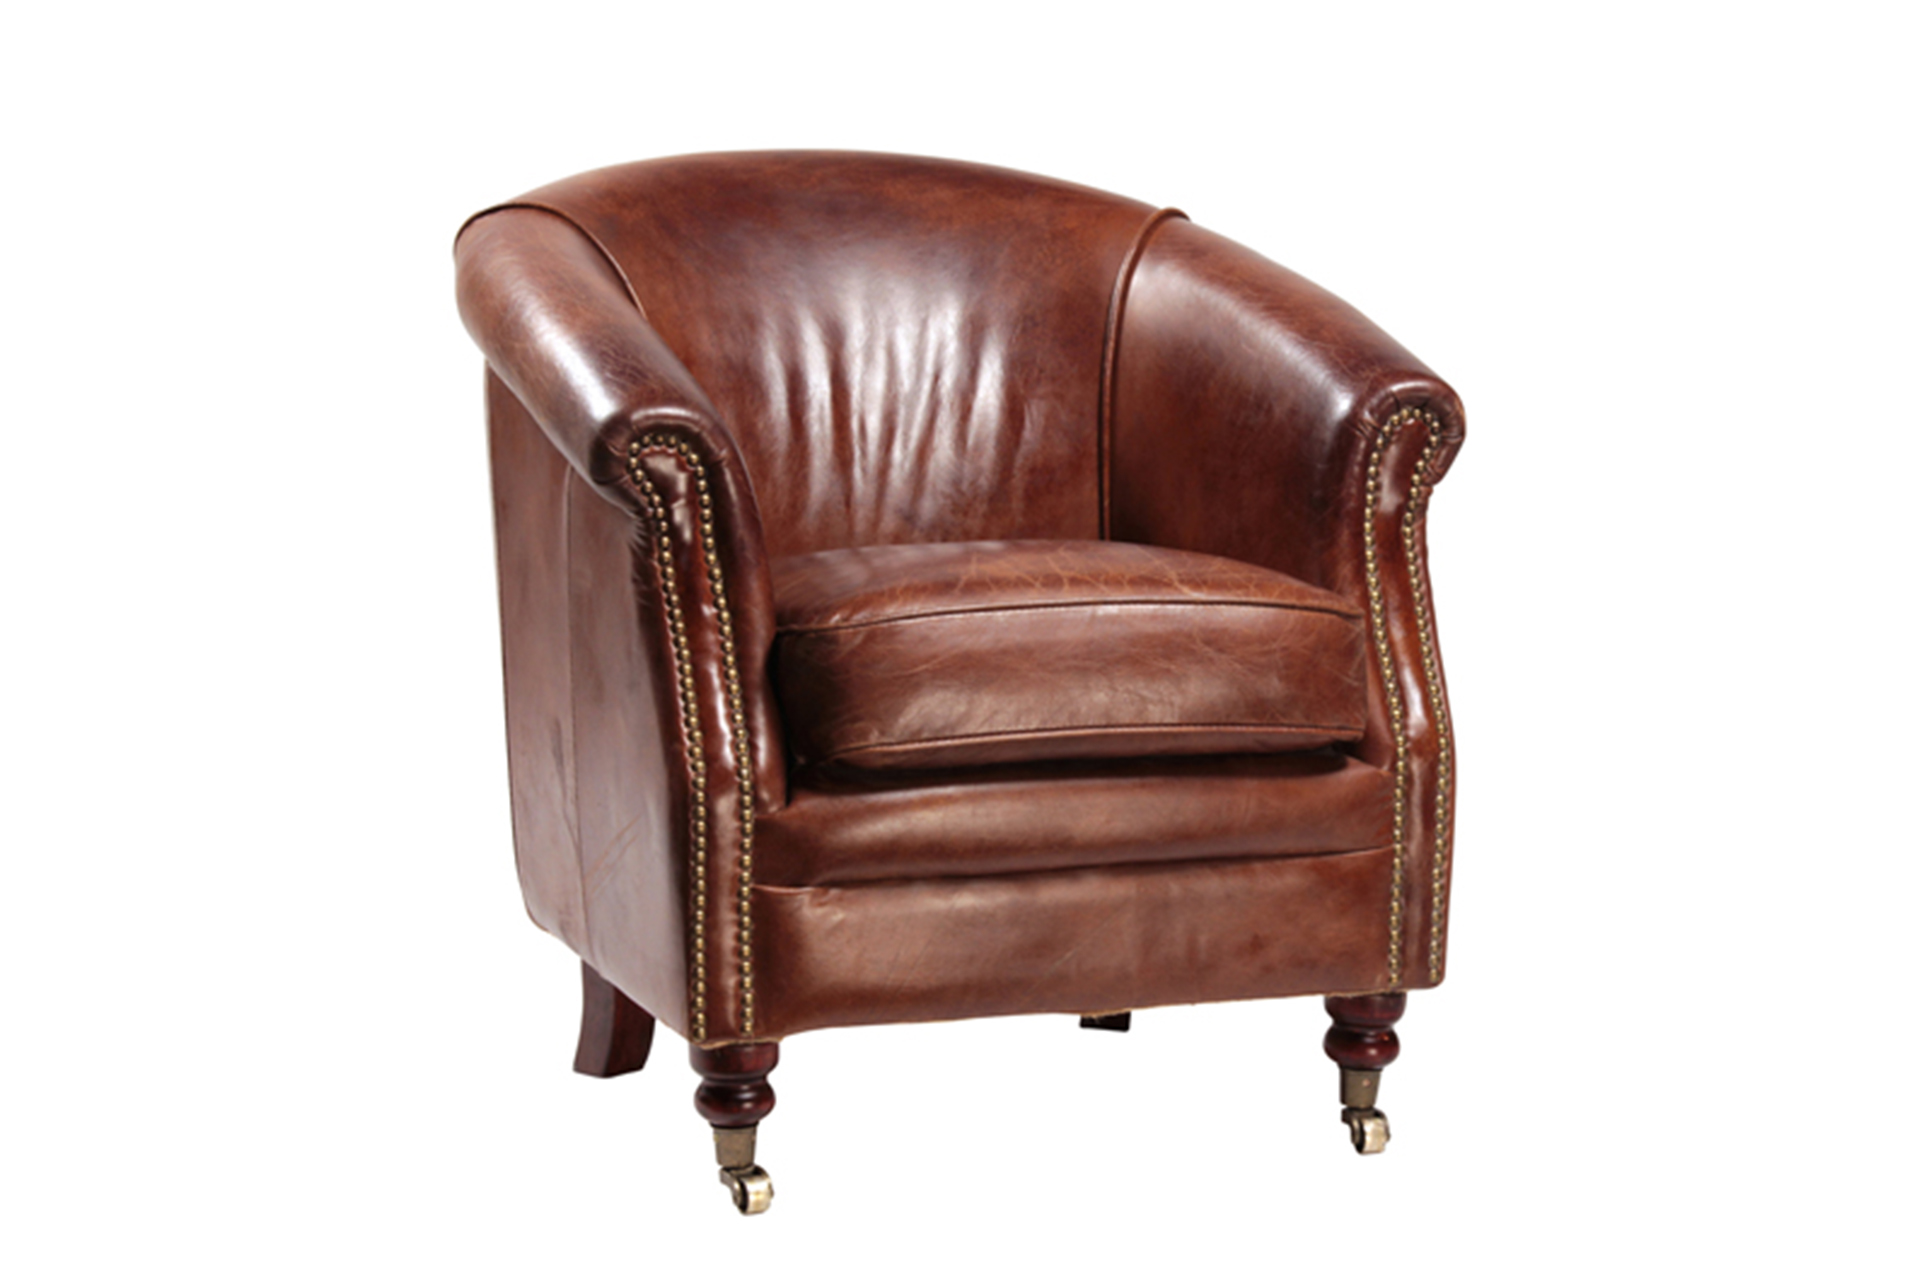 Full Italian Top Grain Cowhide Chair   360 Elements